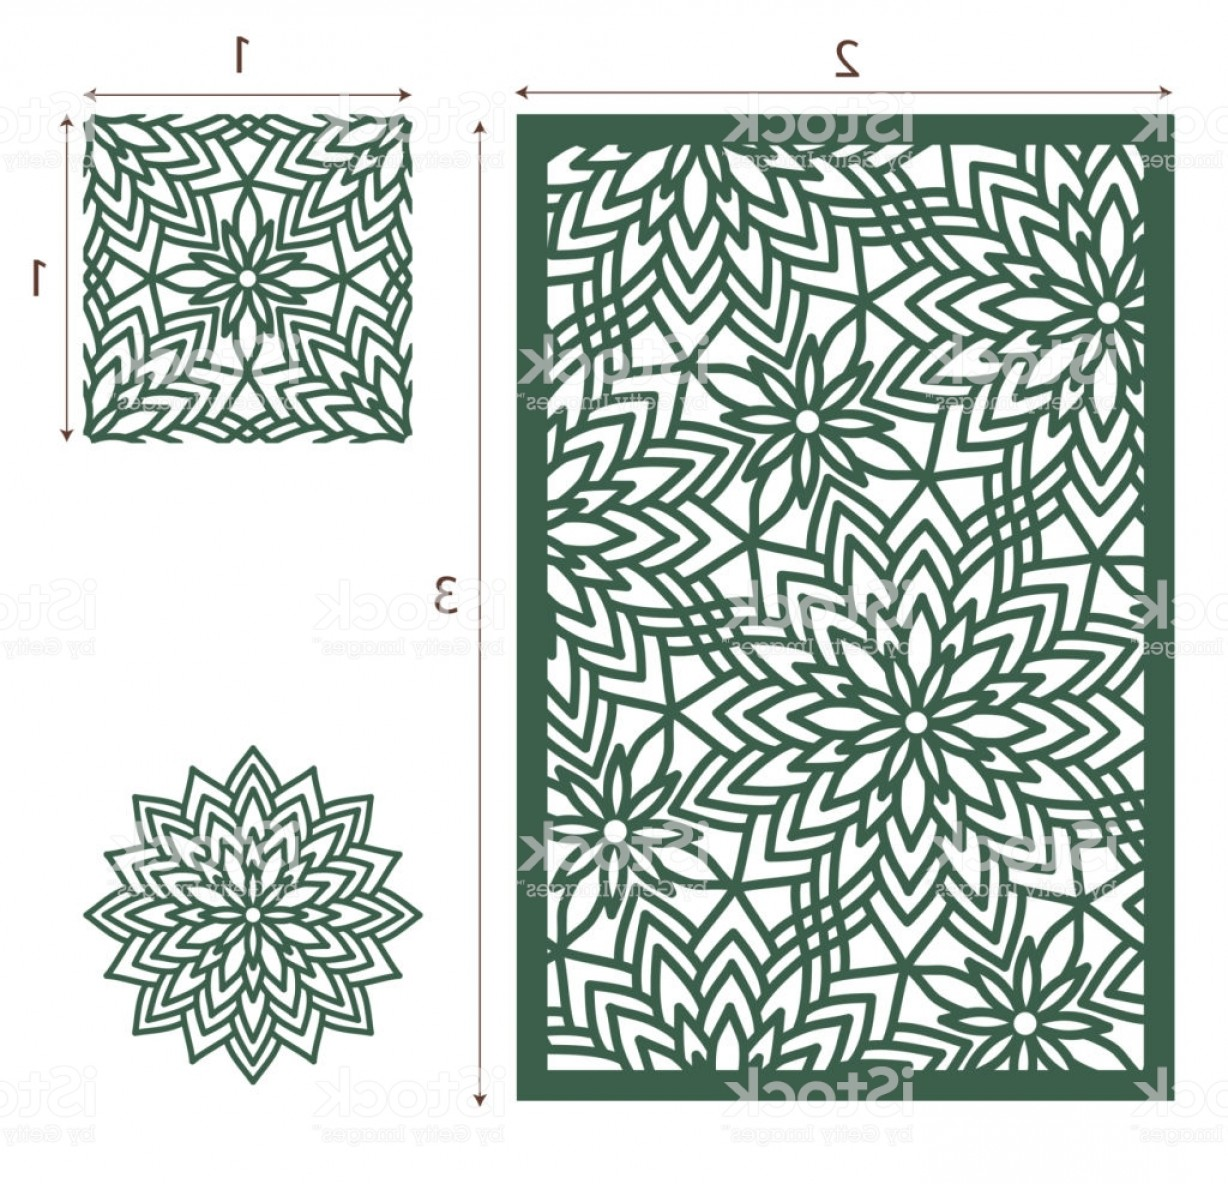 Champagne Vinyl Plotter Vector Art: Vector Laser Cut Panel The Seamless Pattern For Decorative Panel And Flower Template Gm